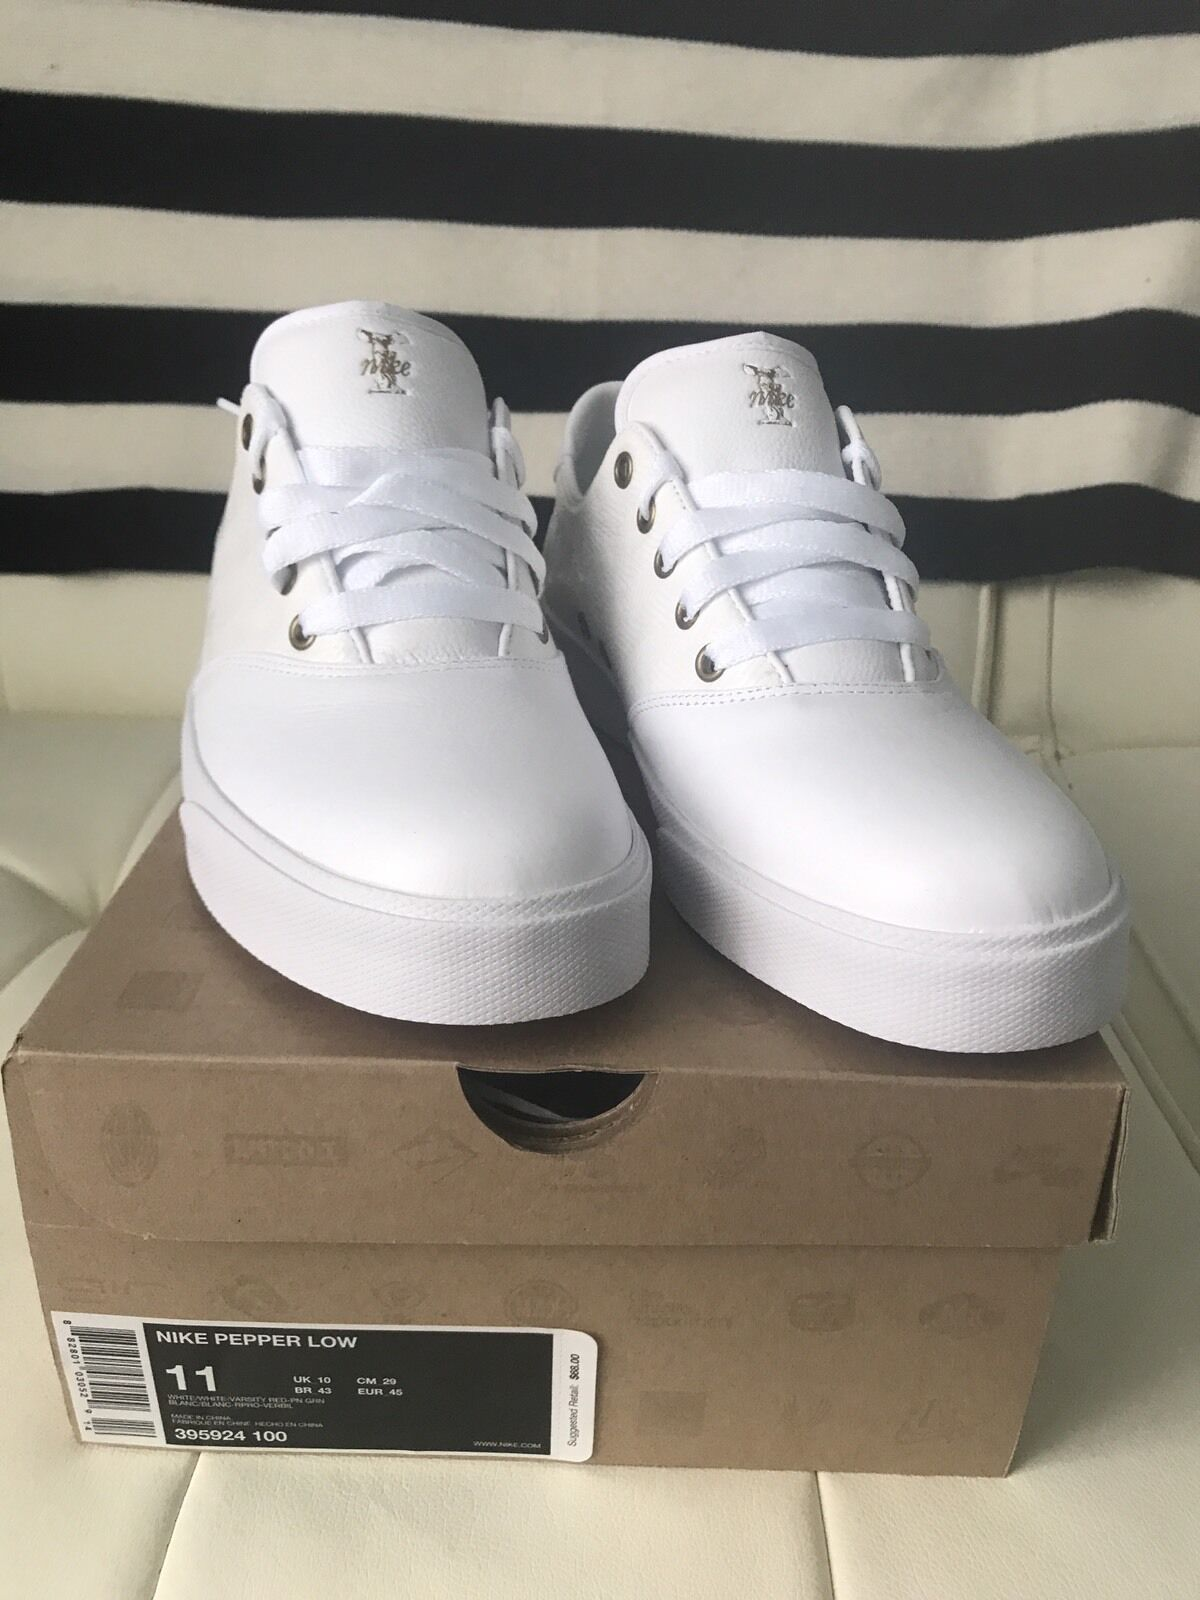 Nike Pepper Low Size 11  Cheap and fashionable